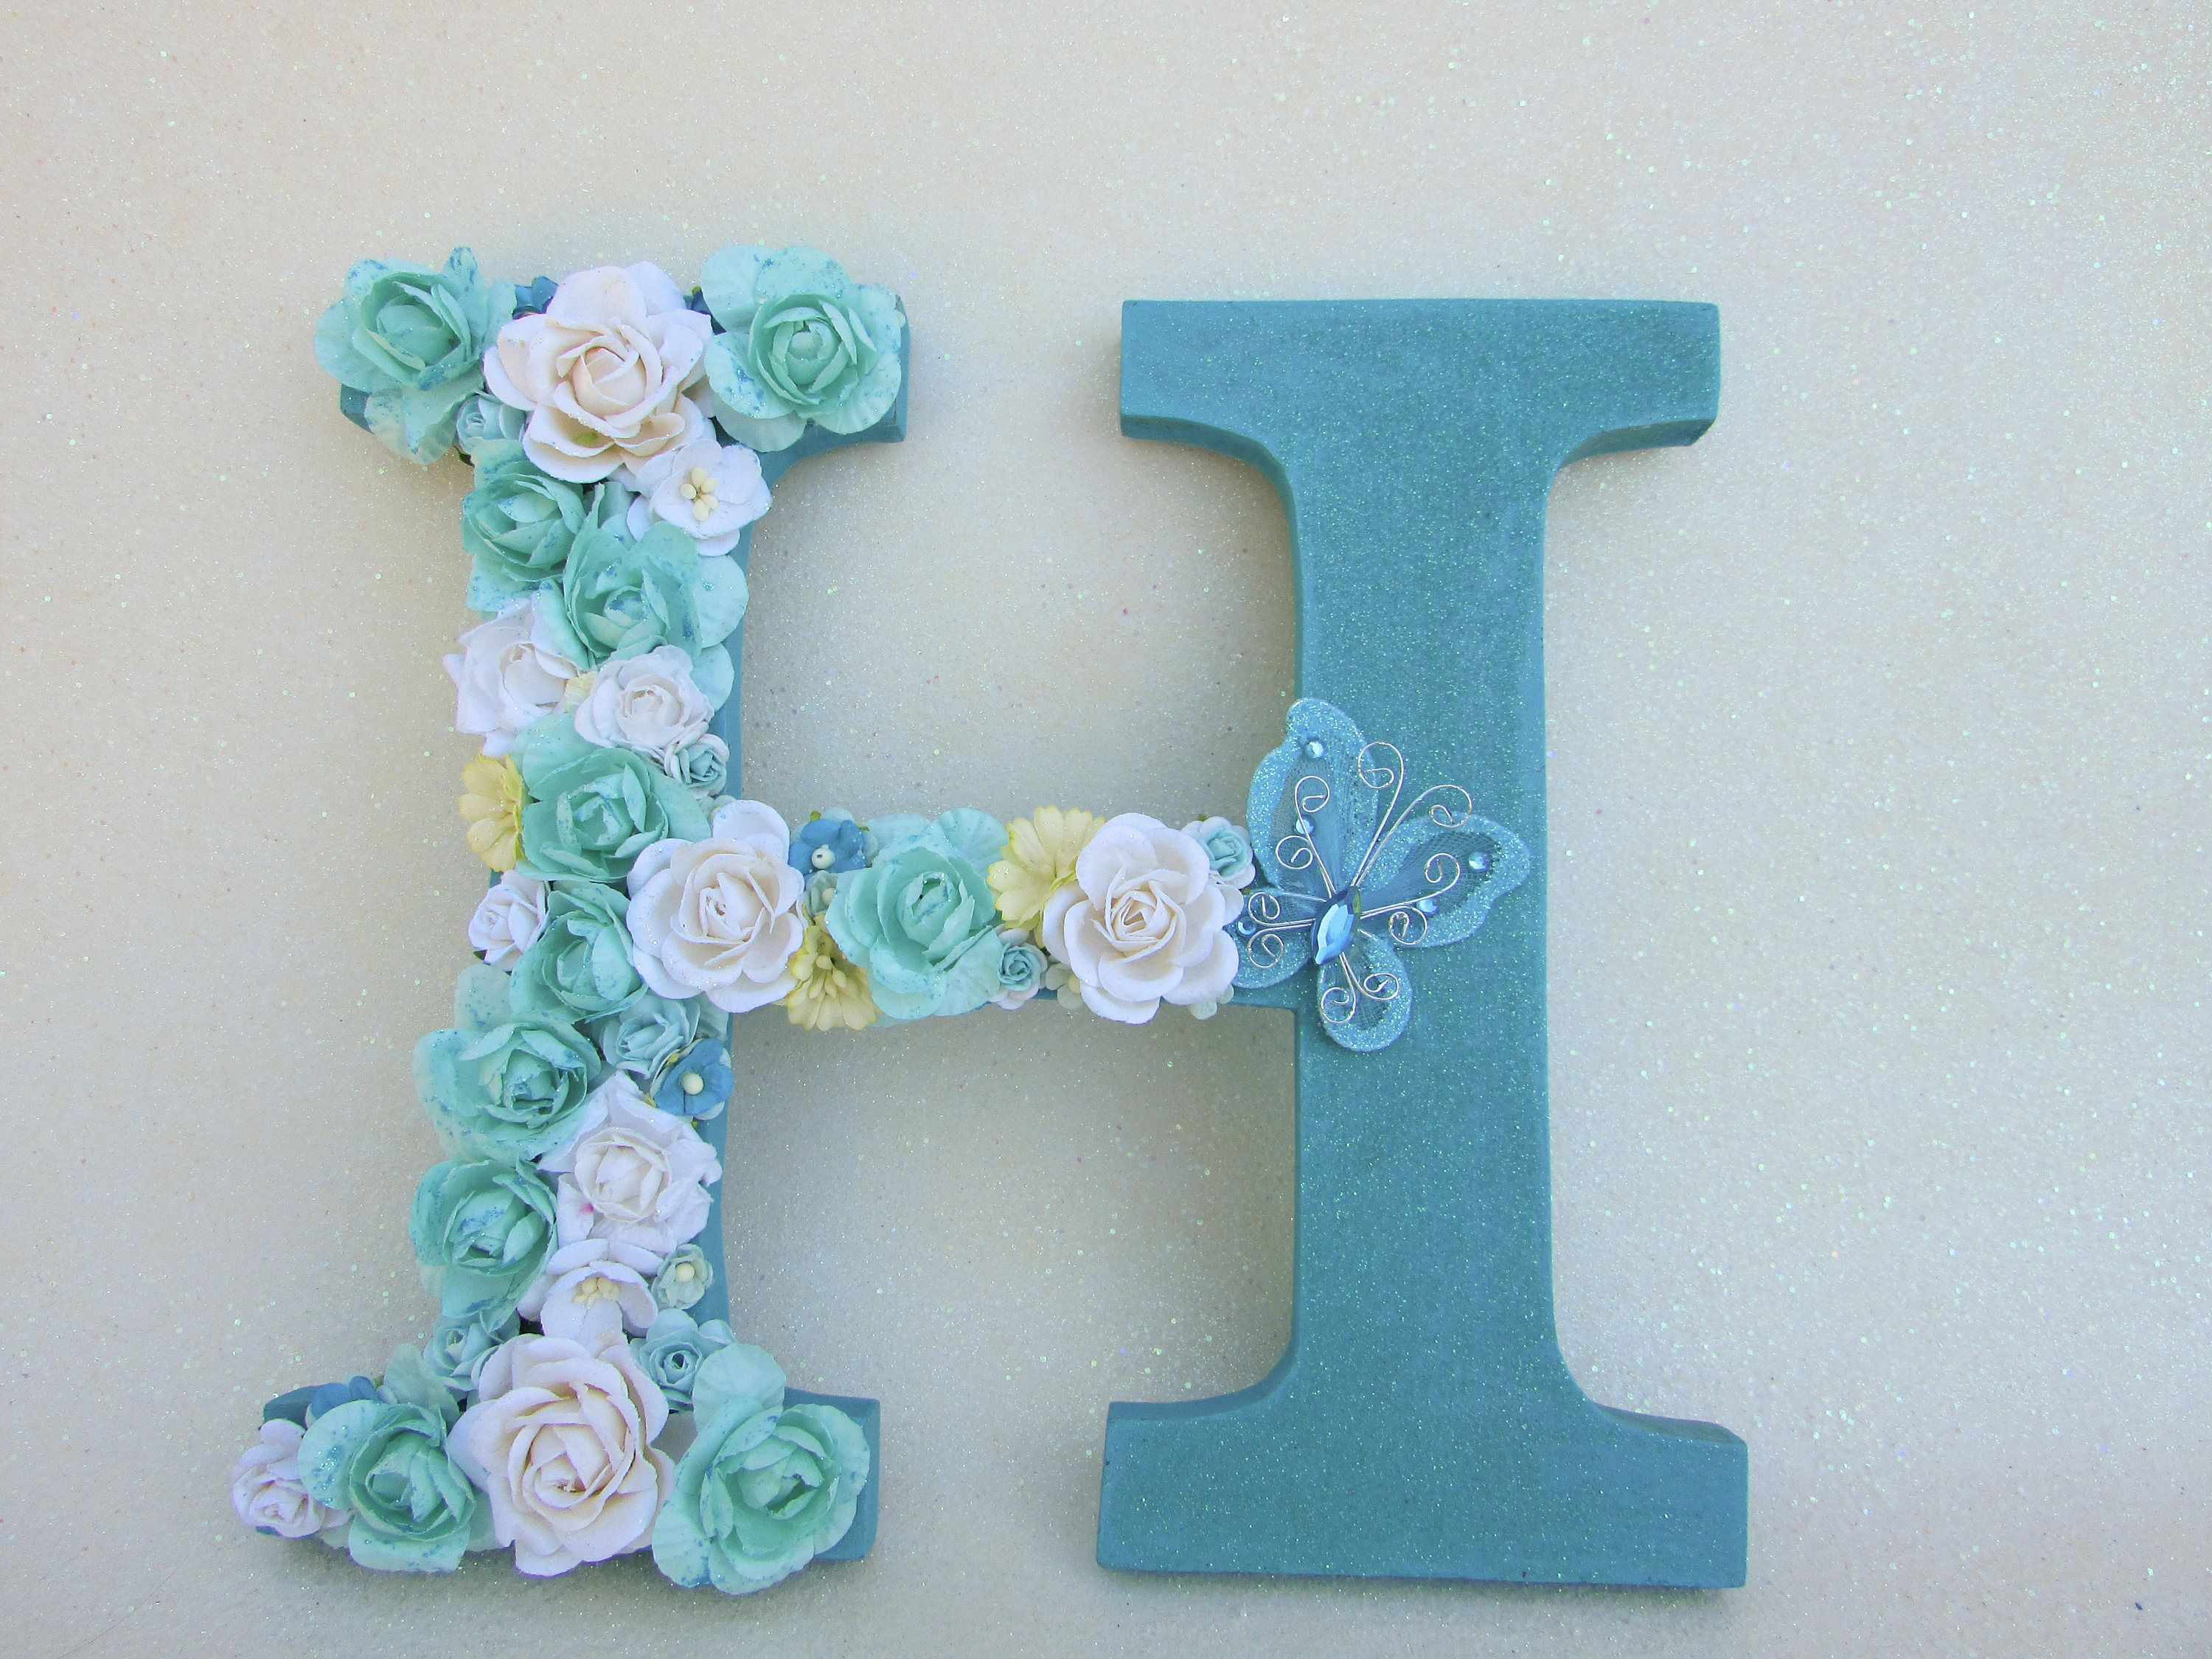 Nursery wall letter  Baby shower present   Flower name letter